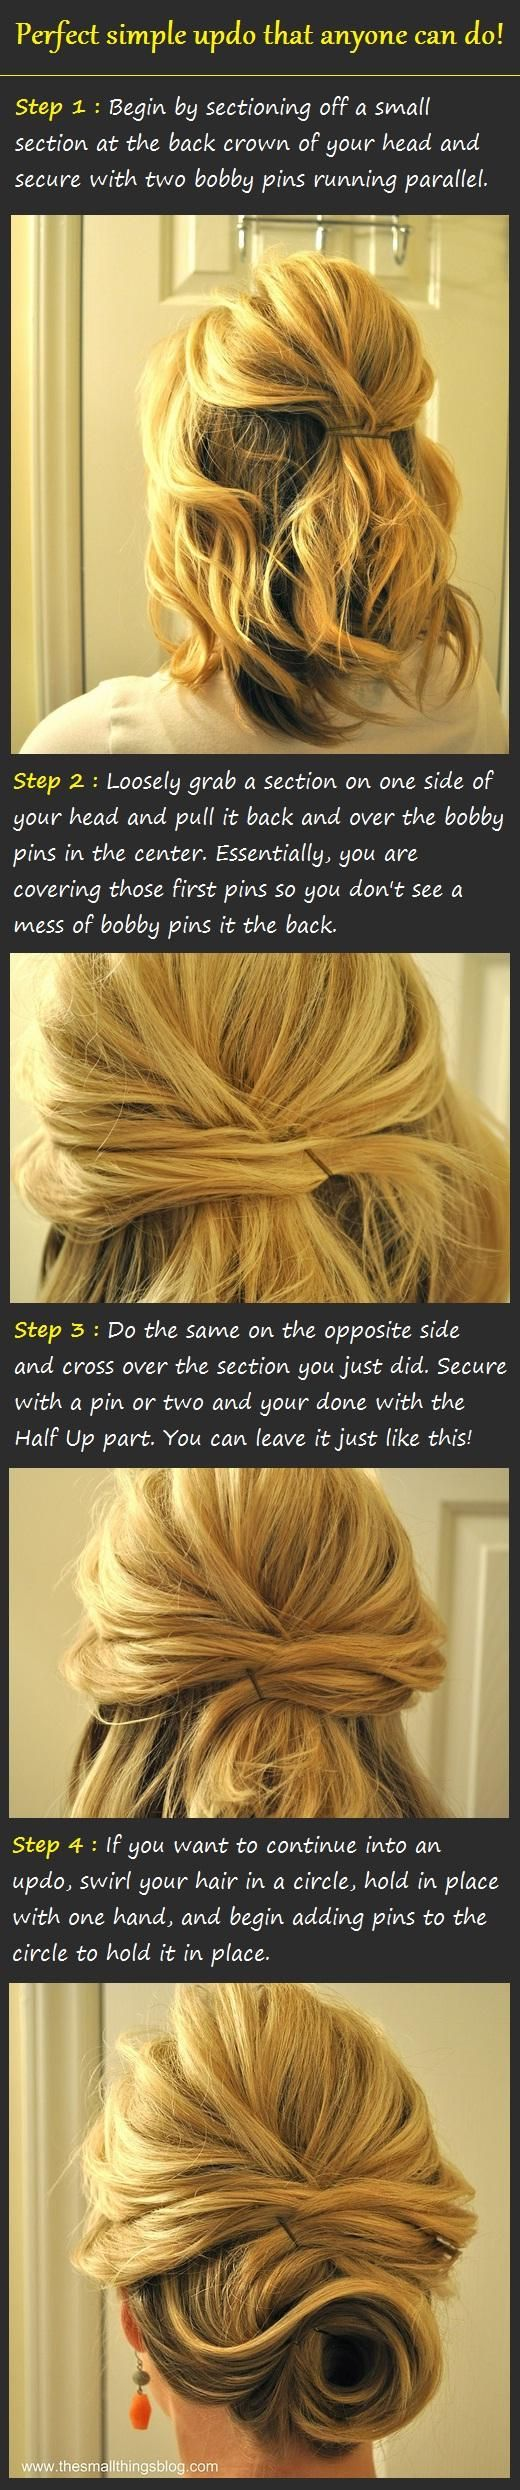 chic updo {so simple!}